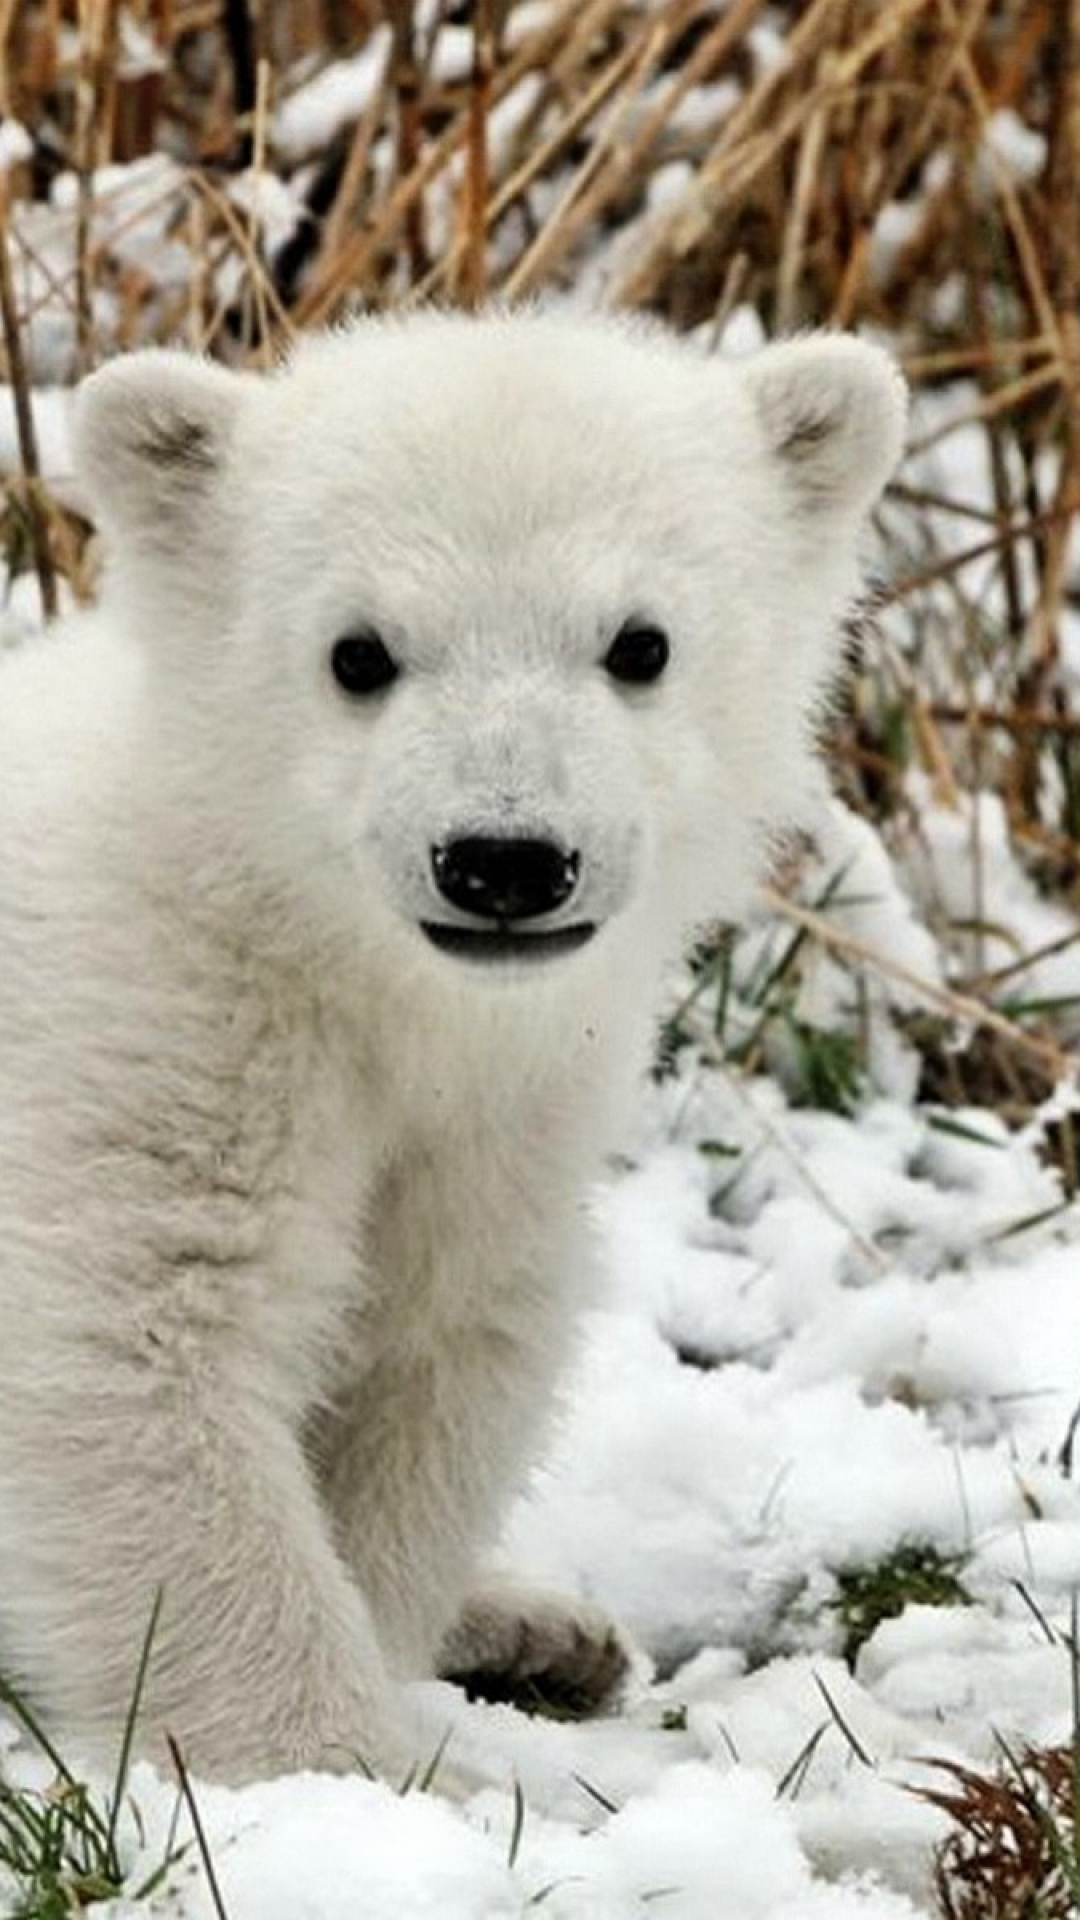 bear-polar-bear-cub-snow-grass-fear-wallpaper-wp3603072